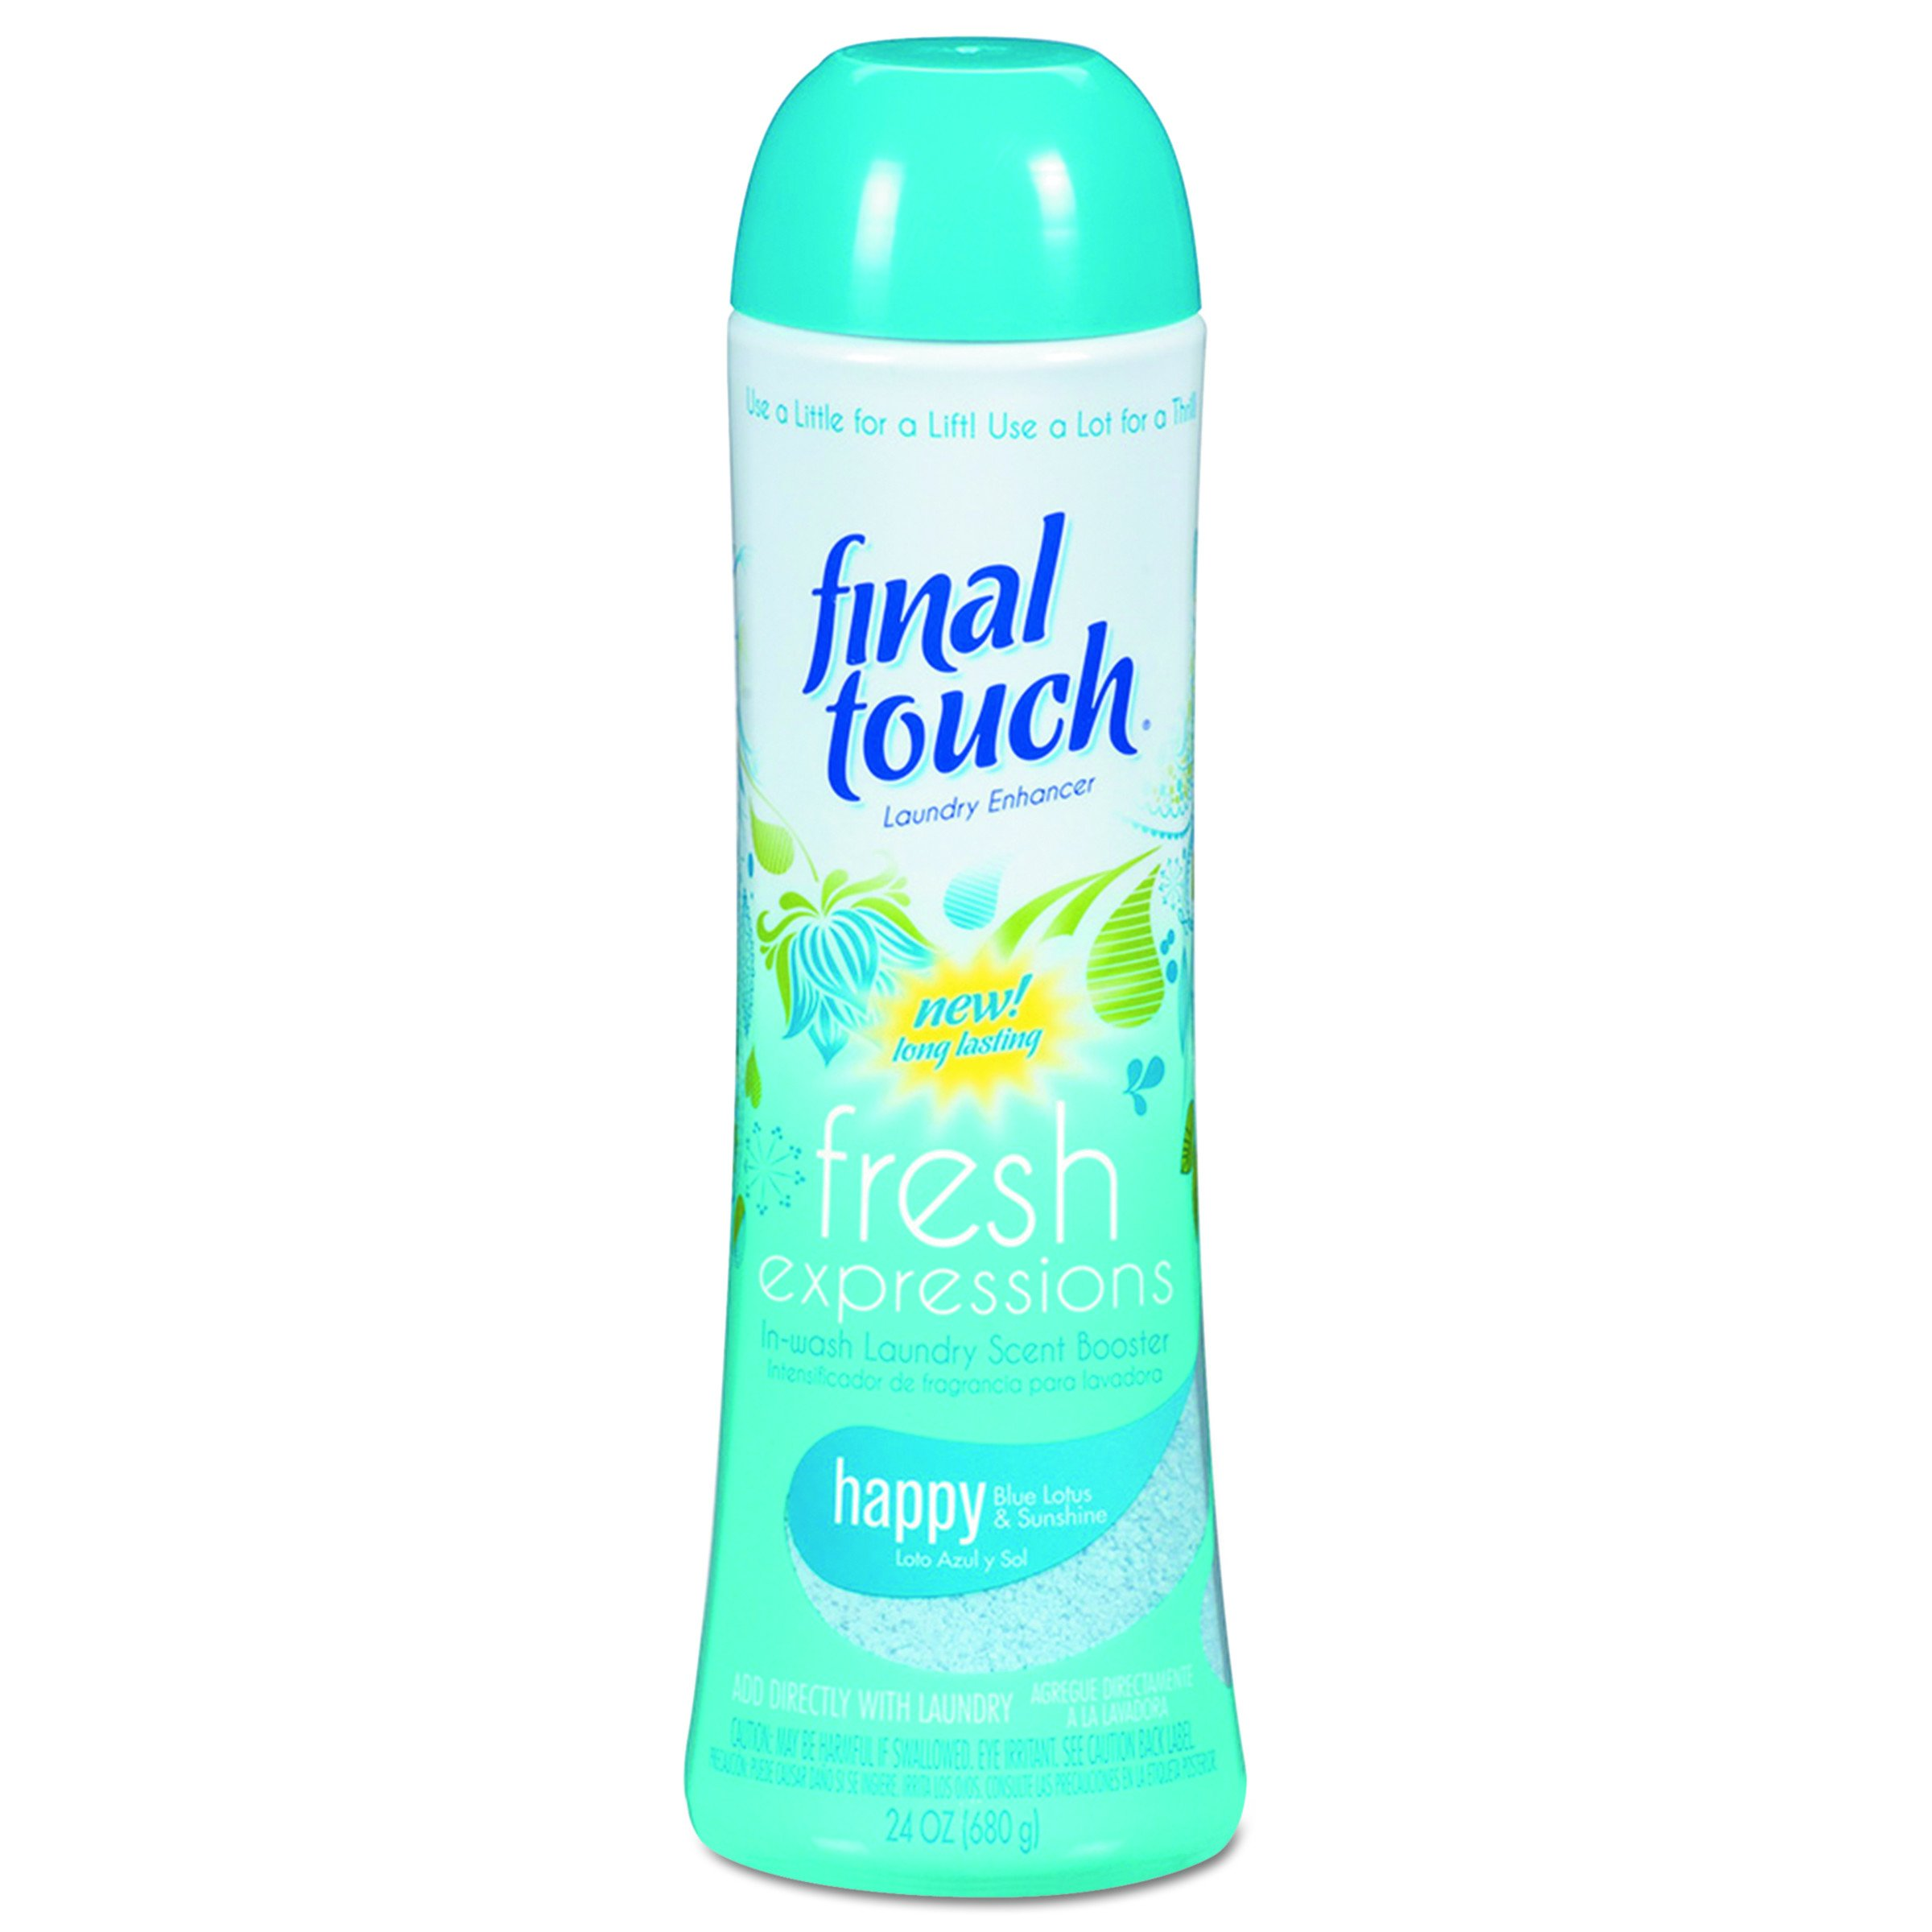 Final Touch 58221CT Fresh Expressions In-Wash Laundry Scent Booster, 24 oz, Powder, Blue Lotus (Case of 6)